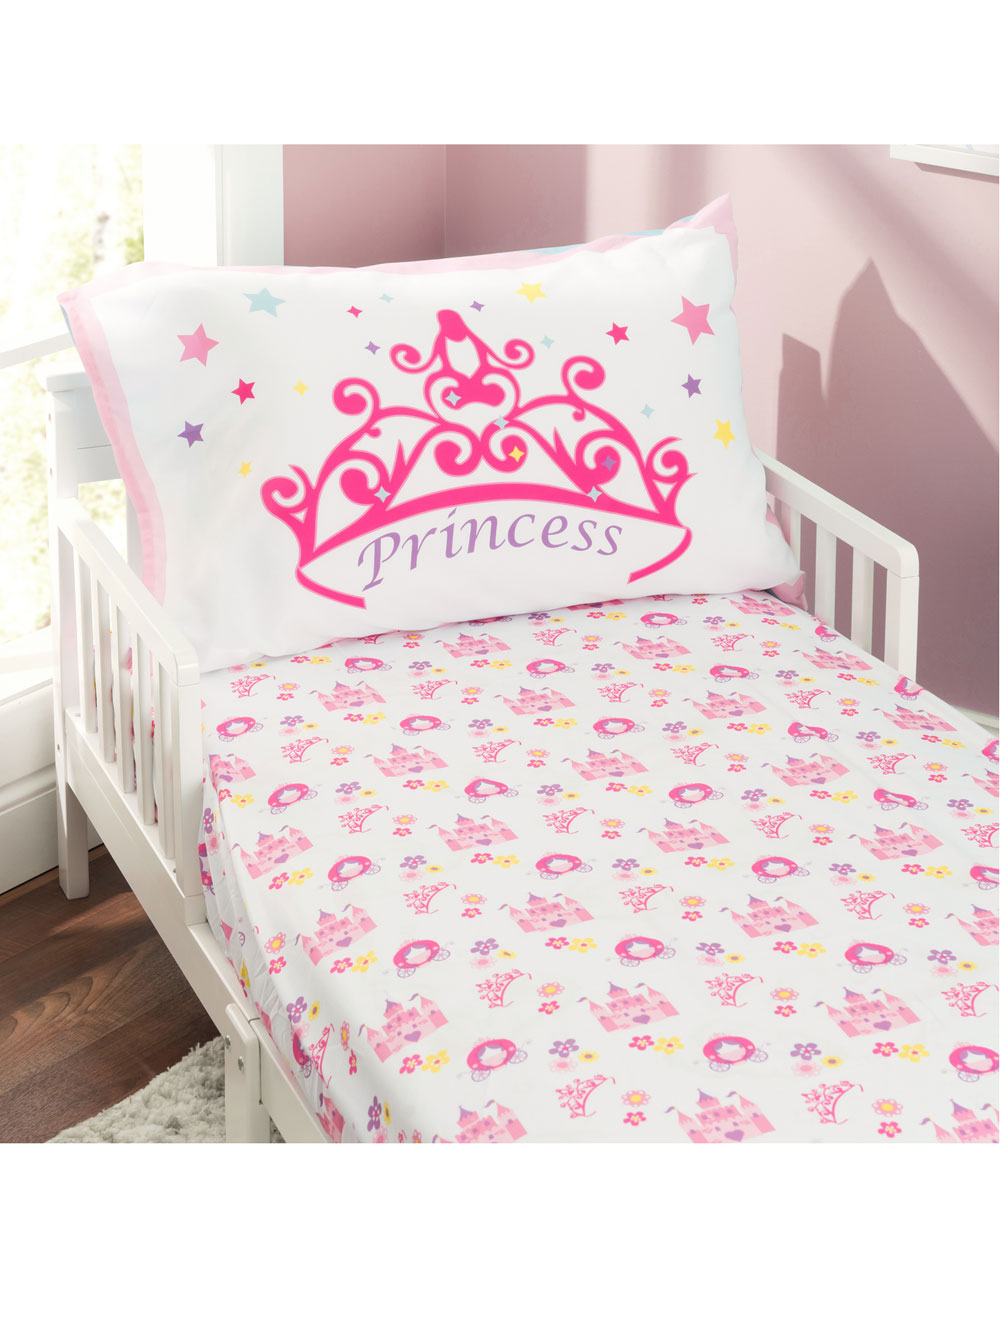 4 piece toddler bedding set by everyday kids in blue pink green